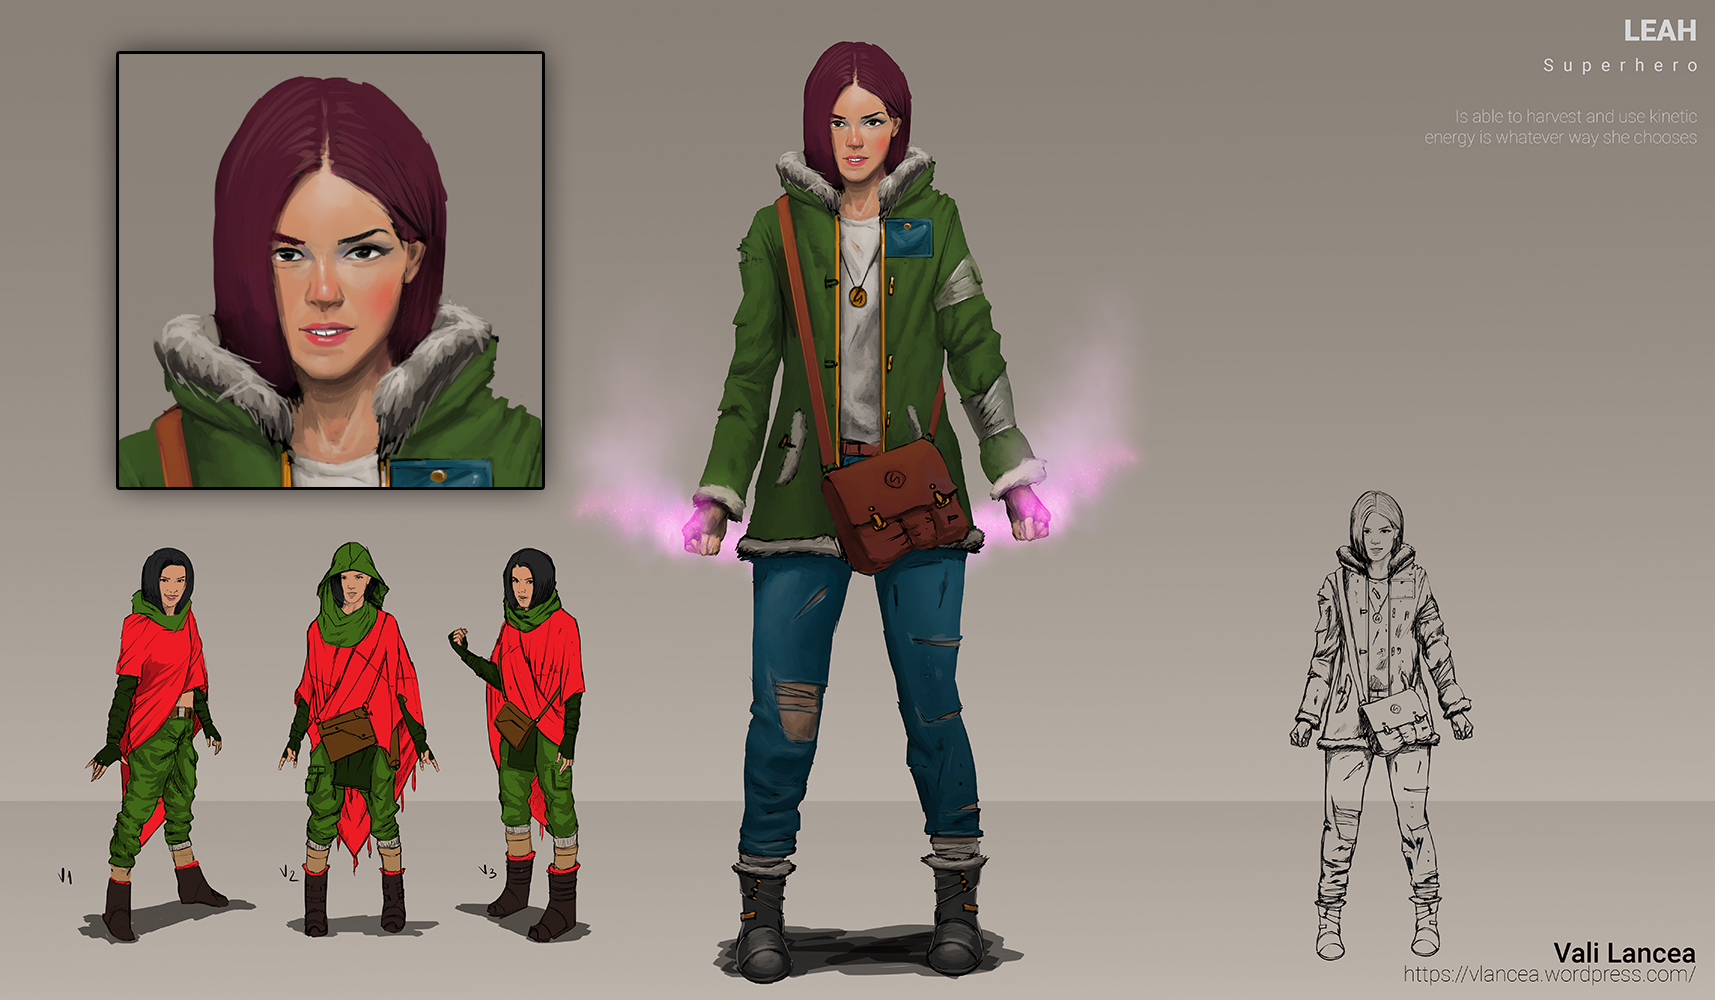 Leah sketches character concept